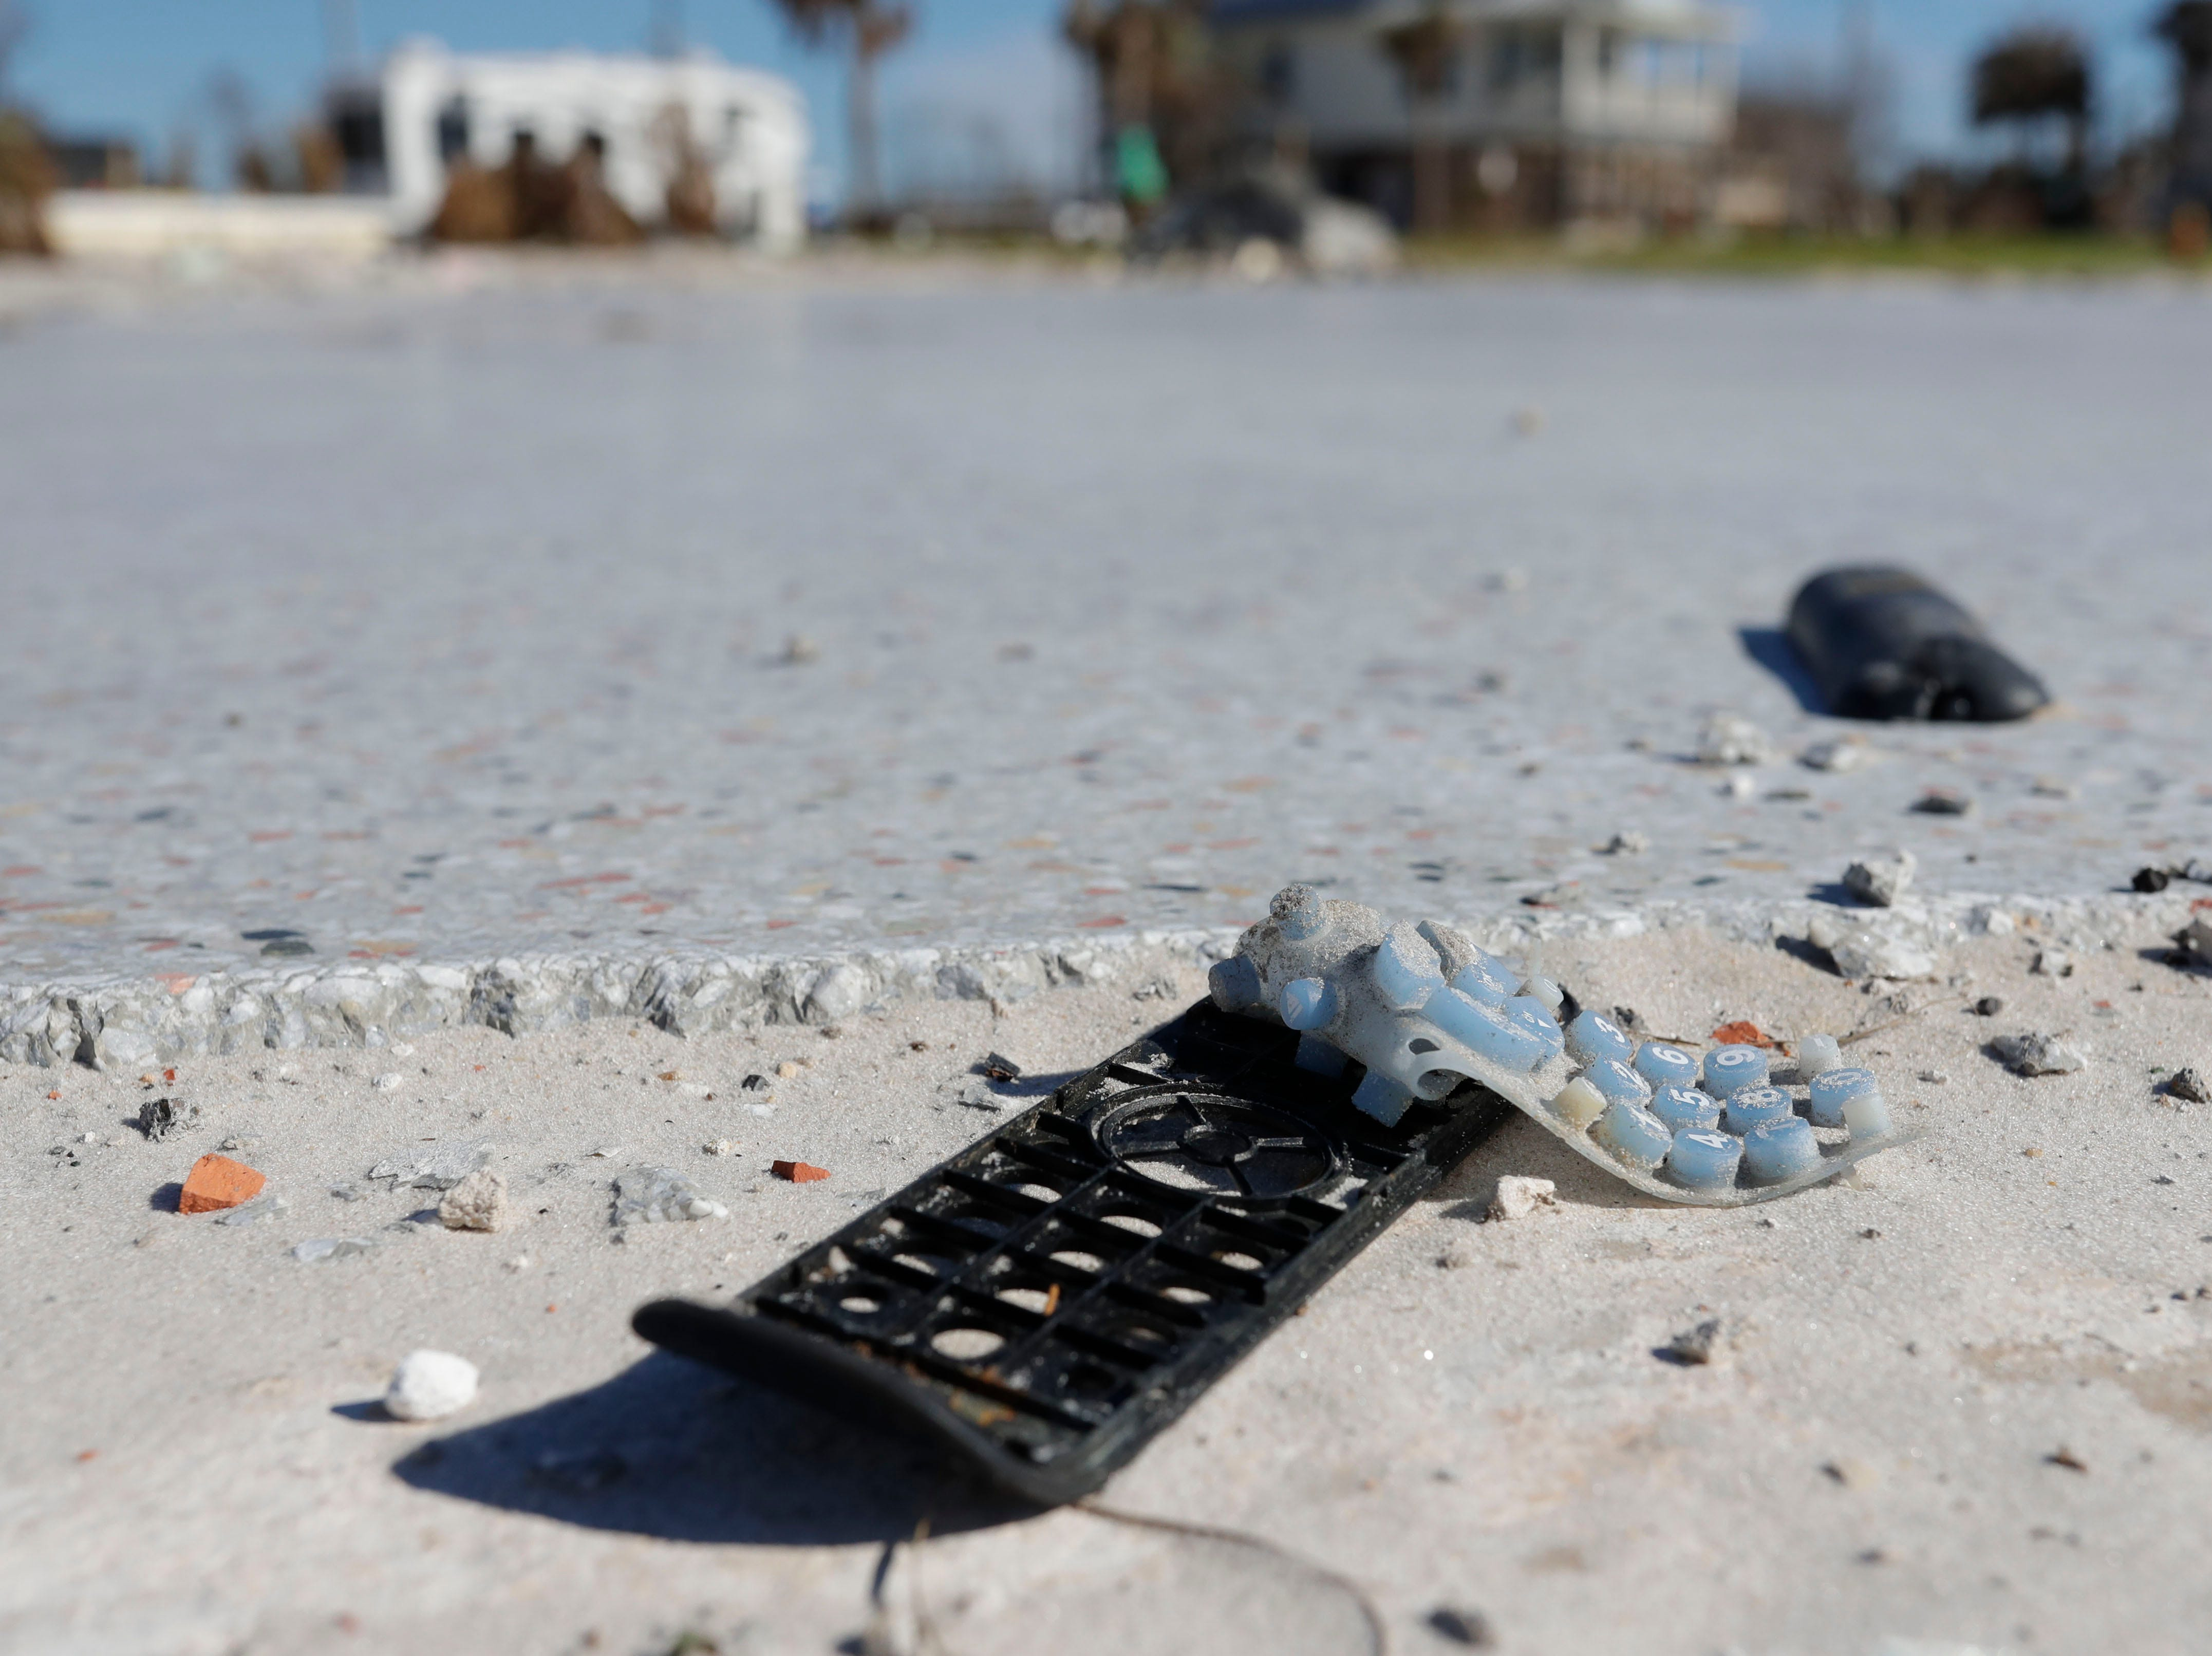 What was once a television remote is seen laying on the foundation of a home in Mexico Beach, Wednesday, Jan. 9, 2019, which was ripped away when Hurricane Michael left the panhandle in a total disarray on Oct. 10, 2018.